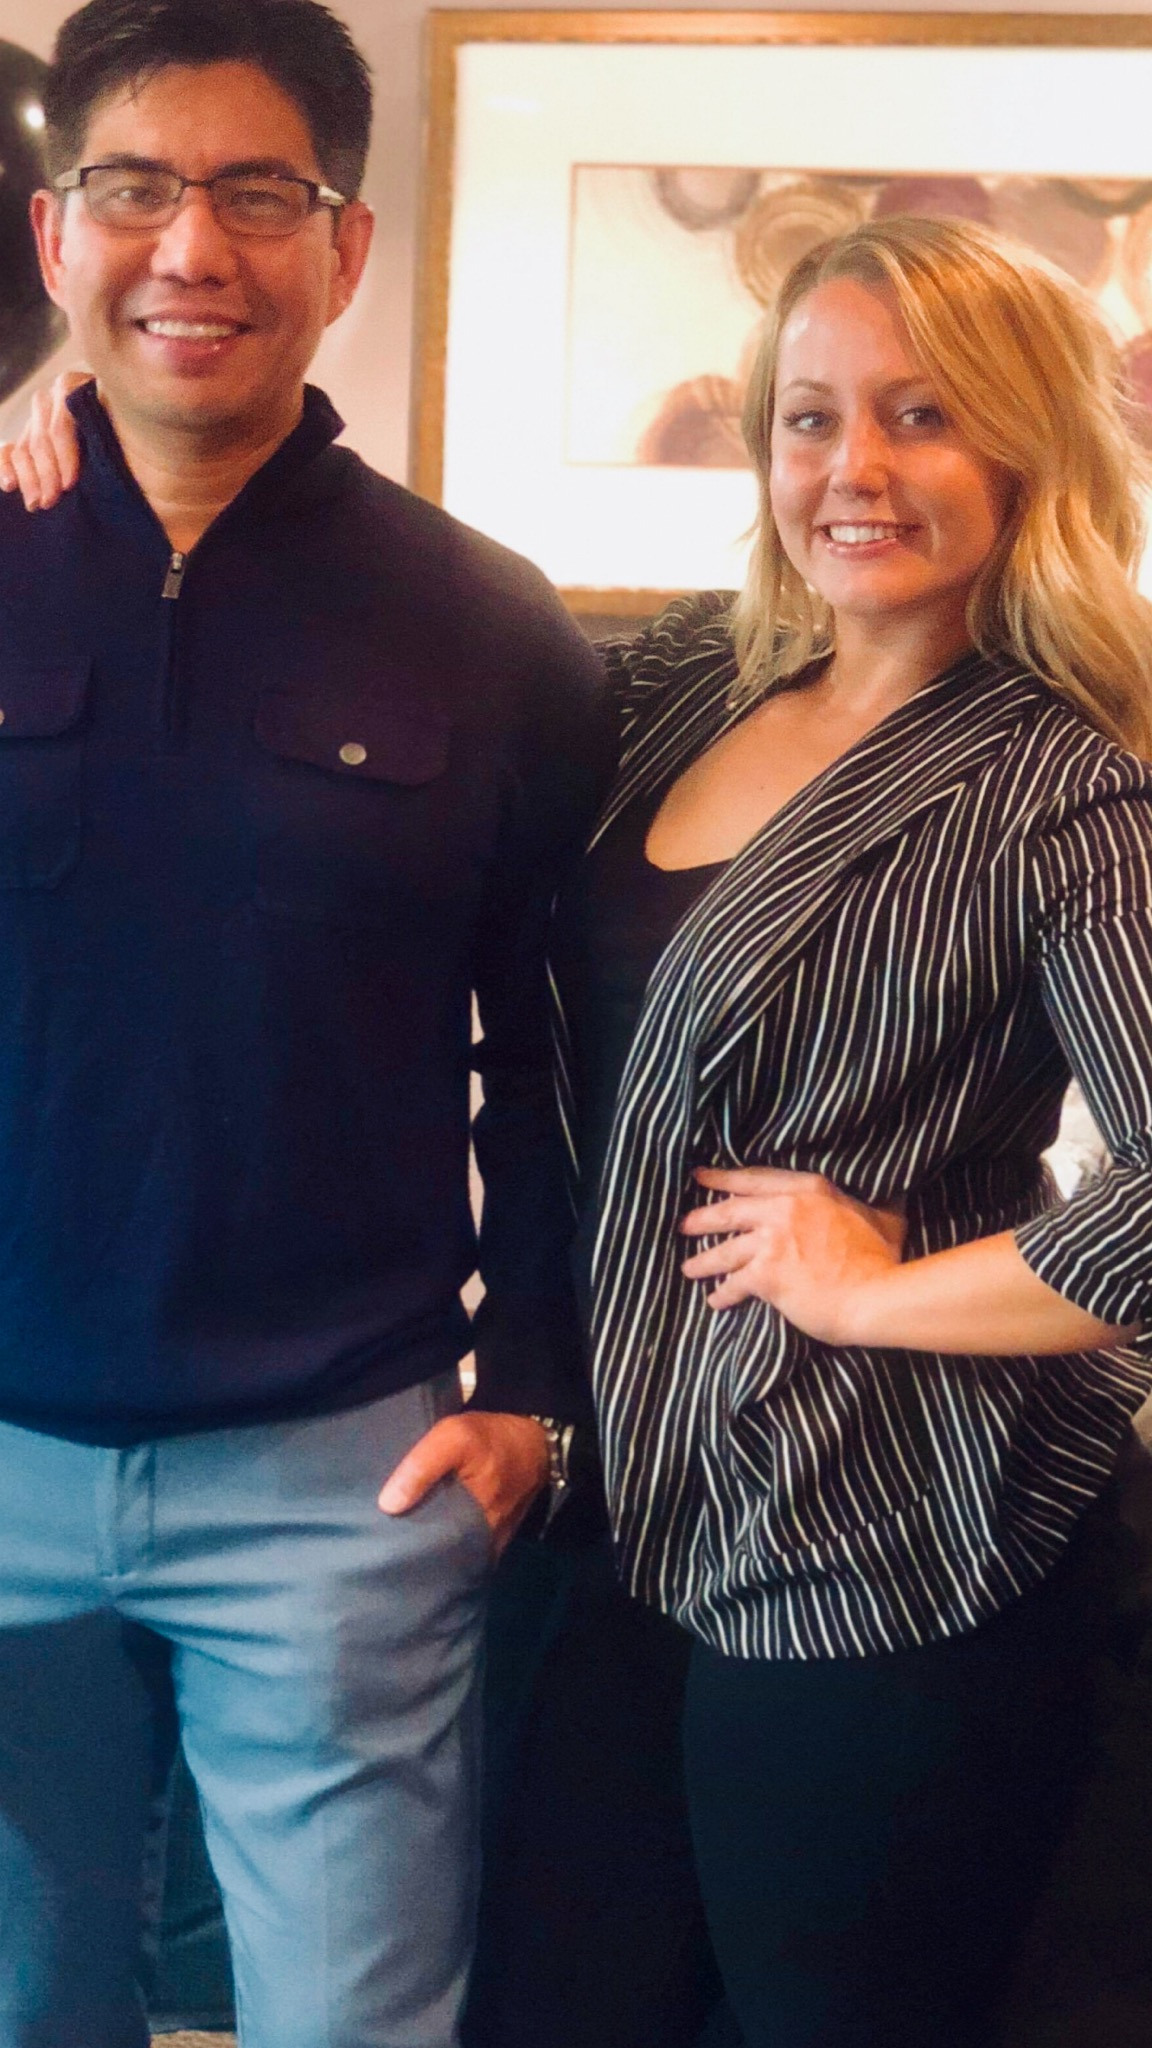 (Dr. Hubert Reyes and licensed esthetician Courtney Taylor)